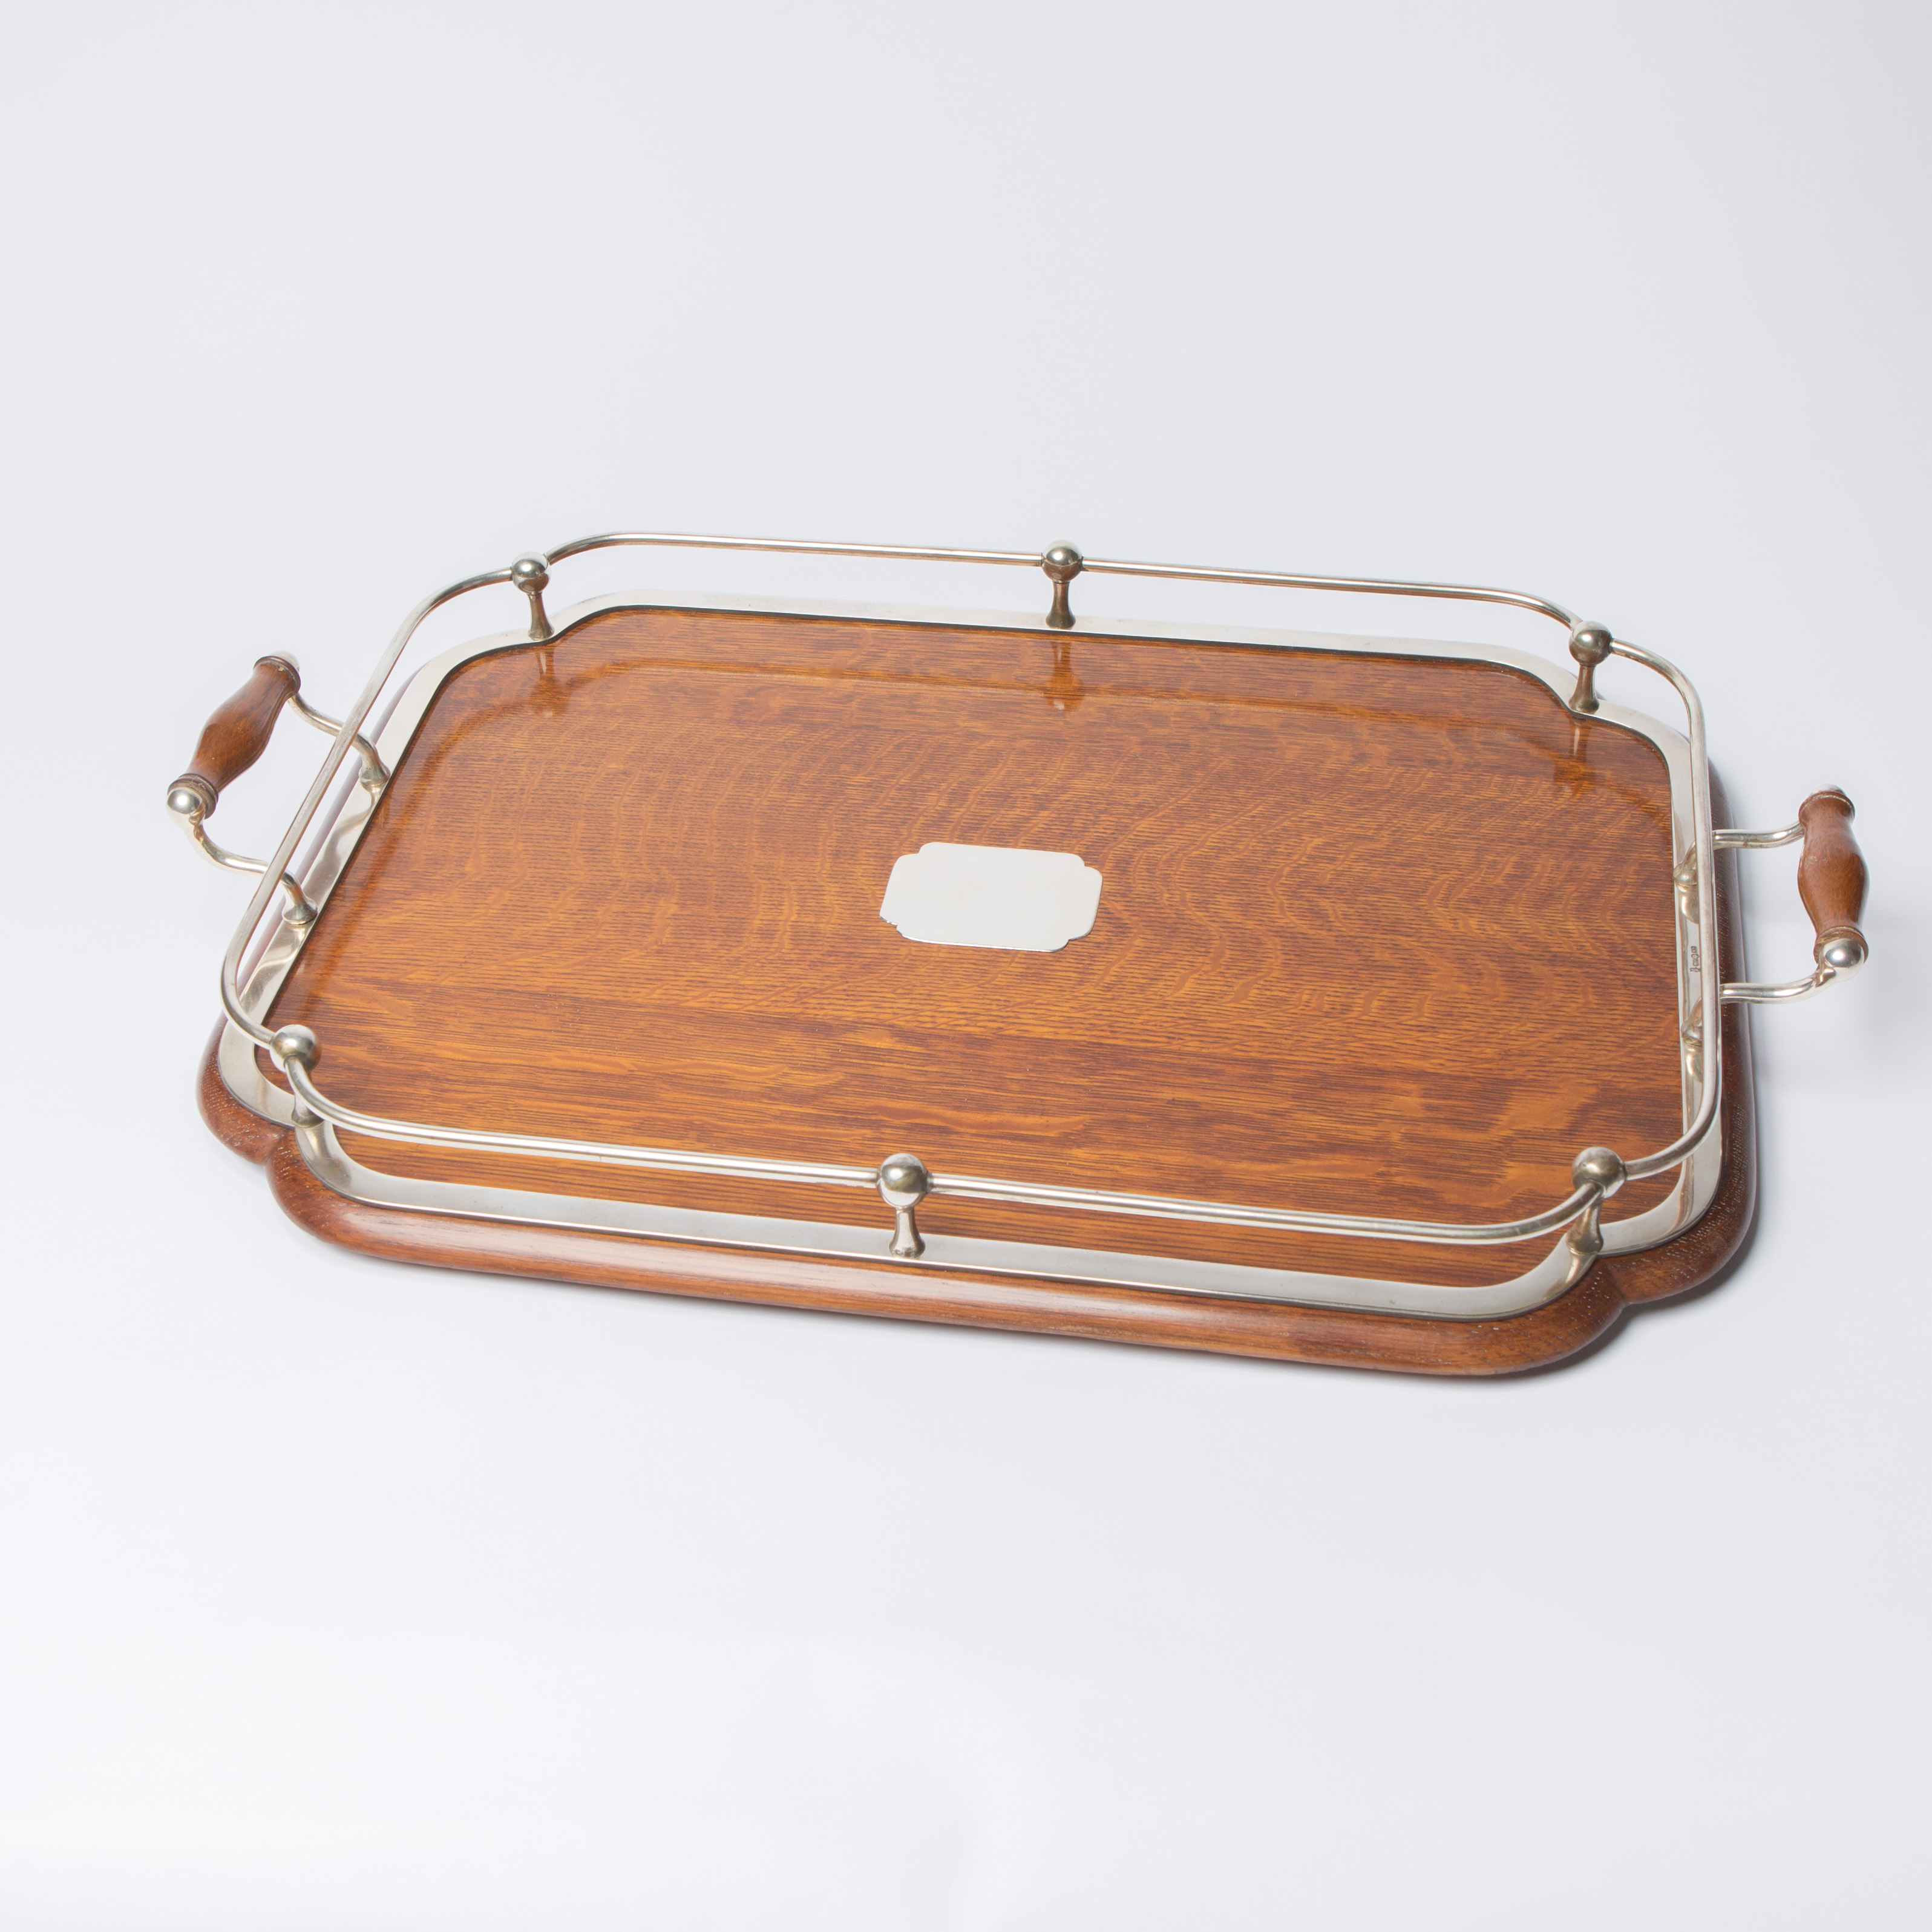 1900S Silver Plate And Wood Tray 10